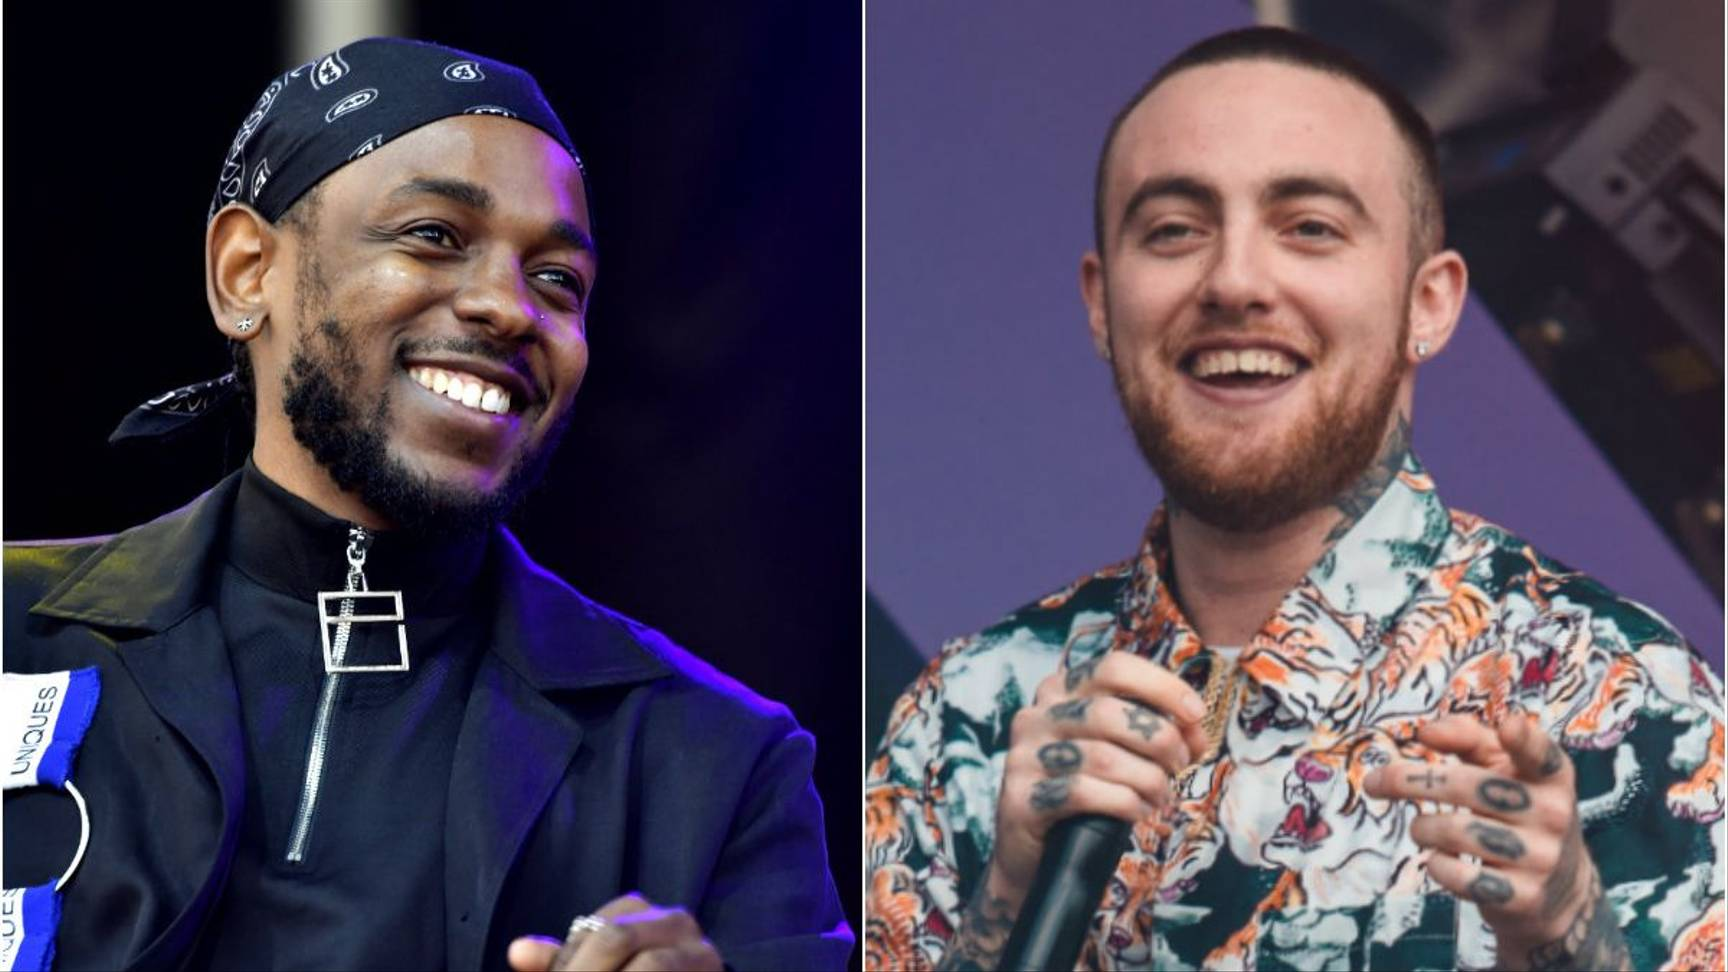 Kendrick Lamar pays tribute to Mac Miller's life, music, and contagious smile: https://t.co/r6I5FsBJwS https://t.co/KyqUO4Pm6r